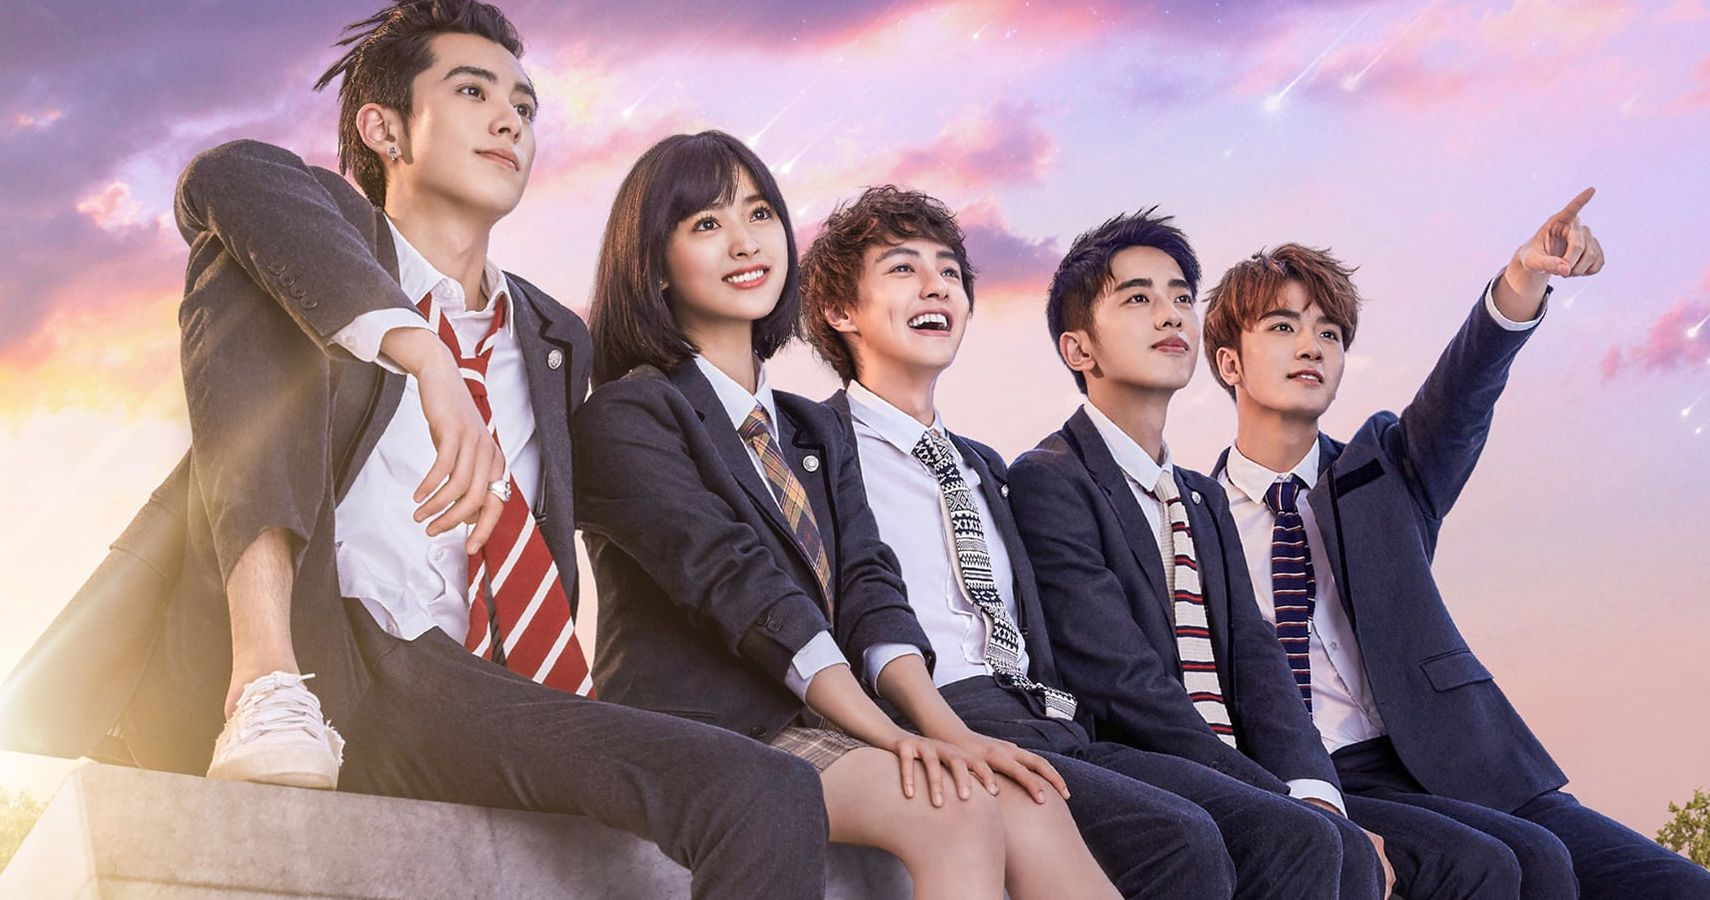 15 Best Korean Shows To Stream On Netflix Screenrant